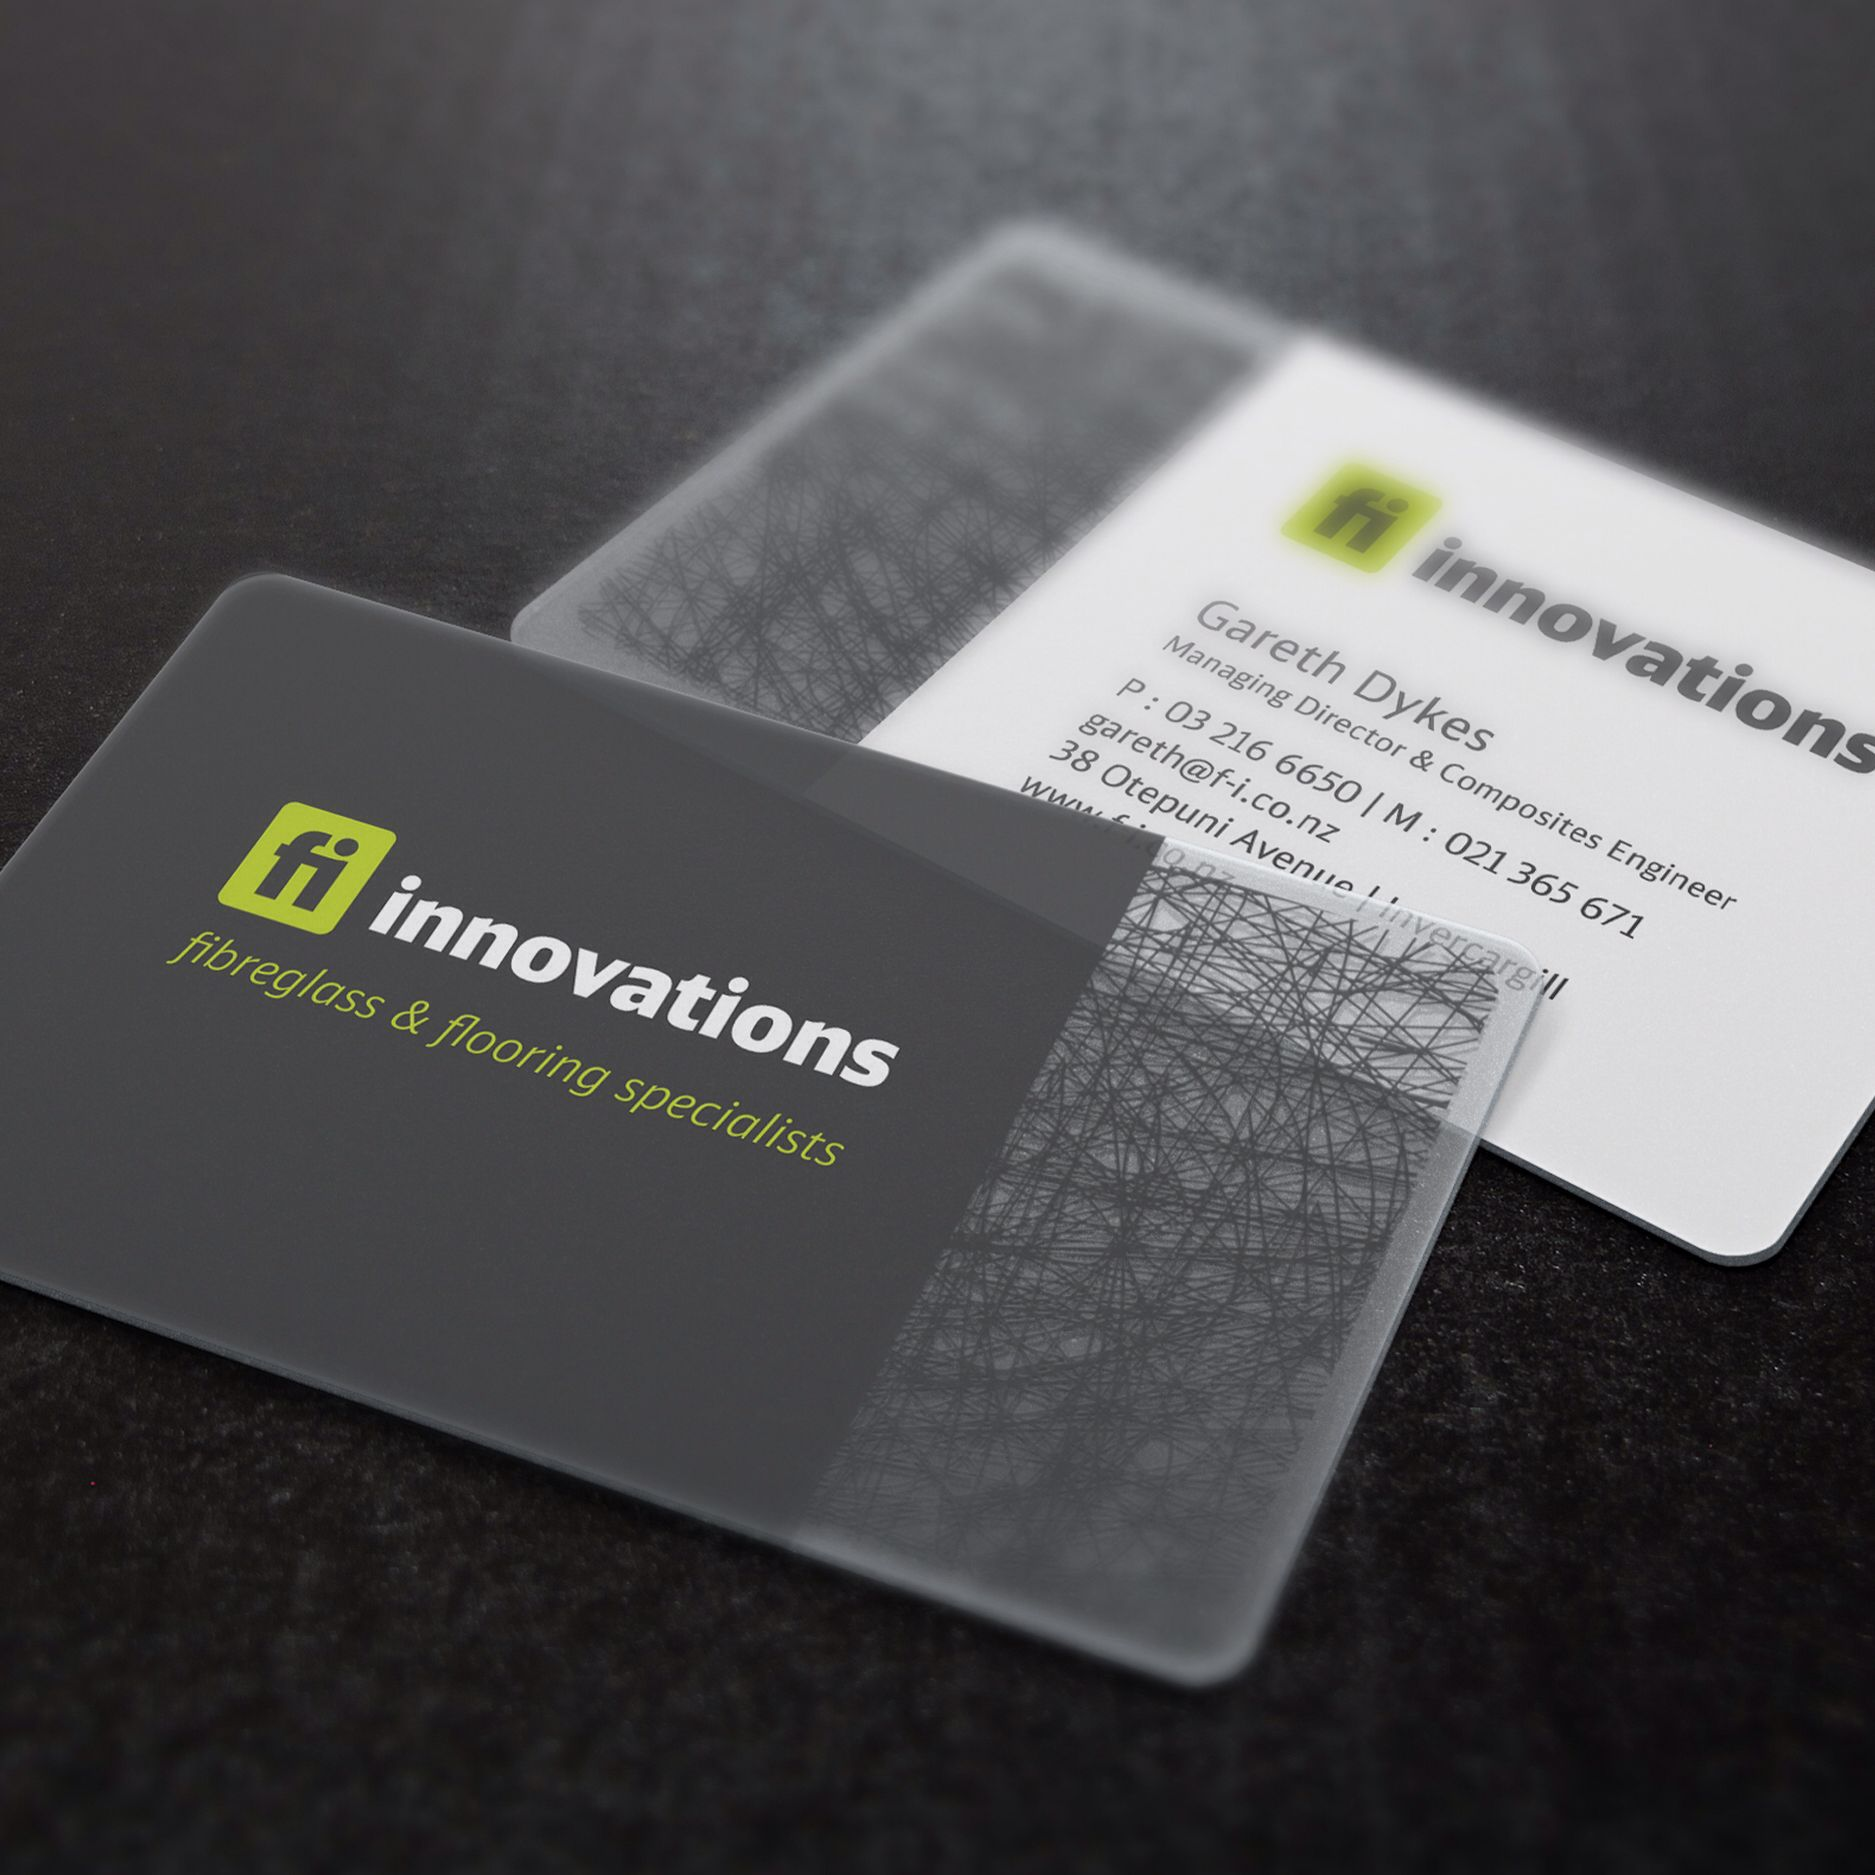 Transparent business cards unlimitedgamers fibreglass innovation transparent business cards print design reheart Choice Image